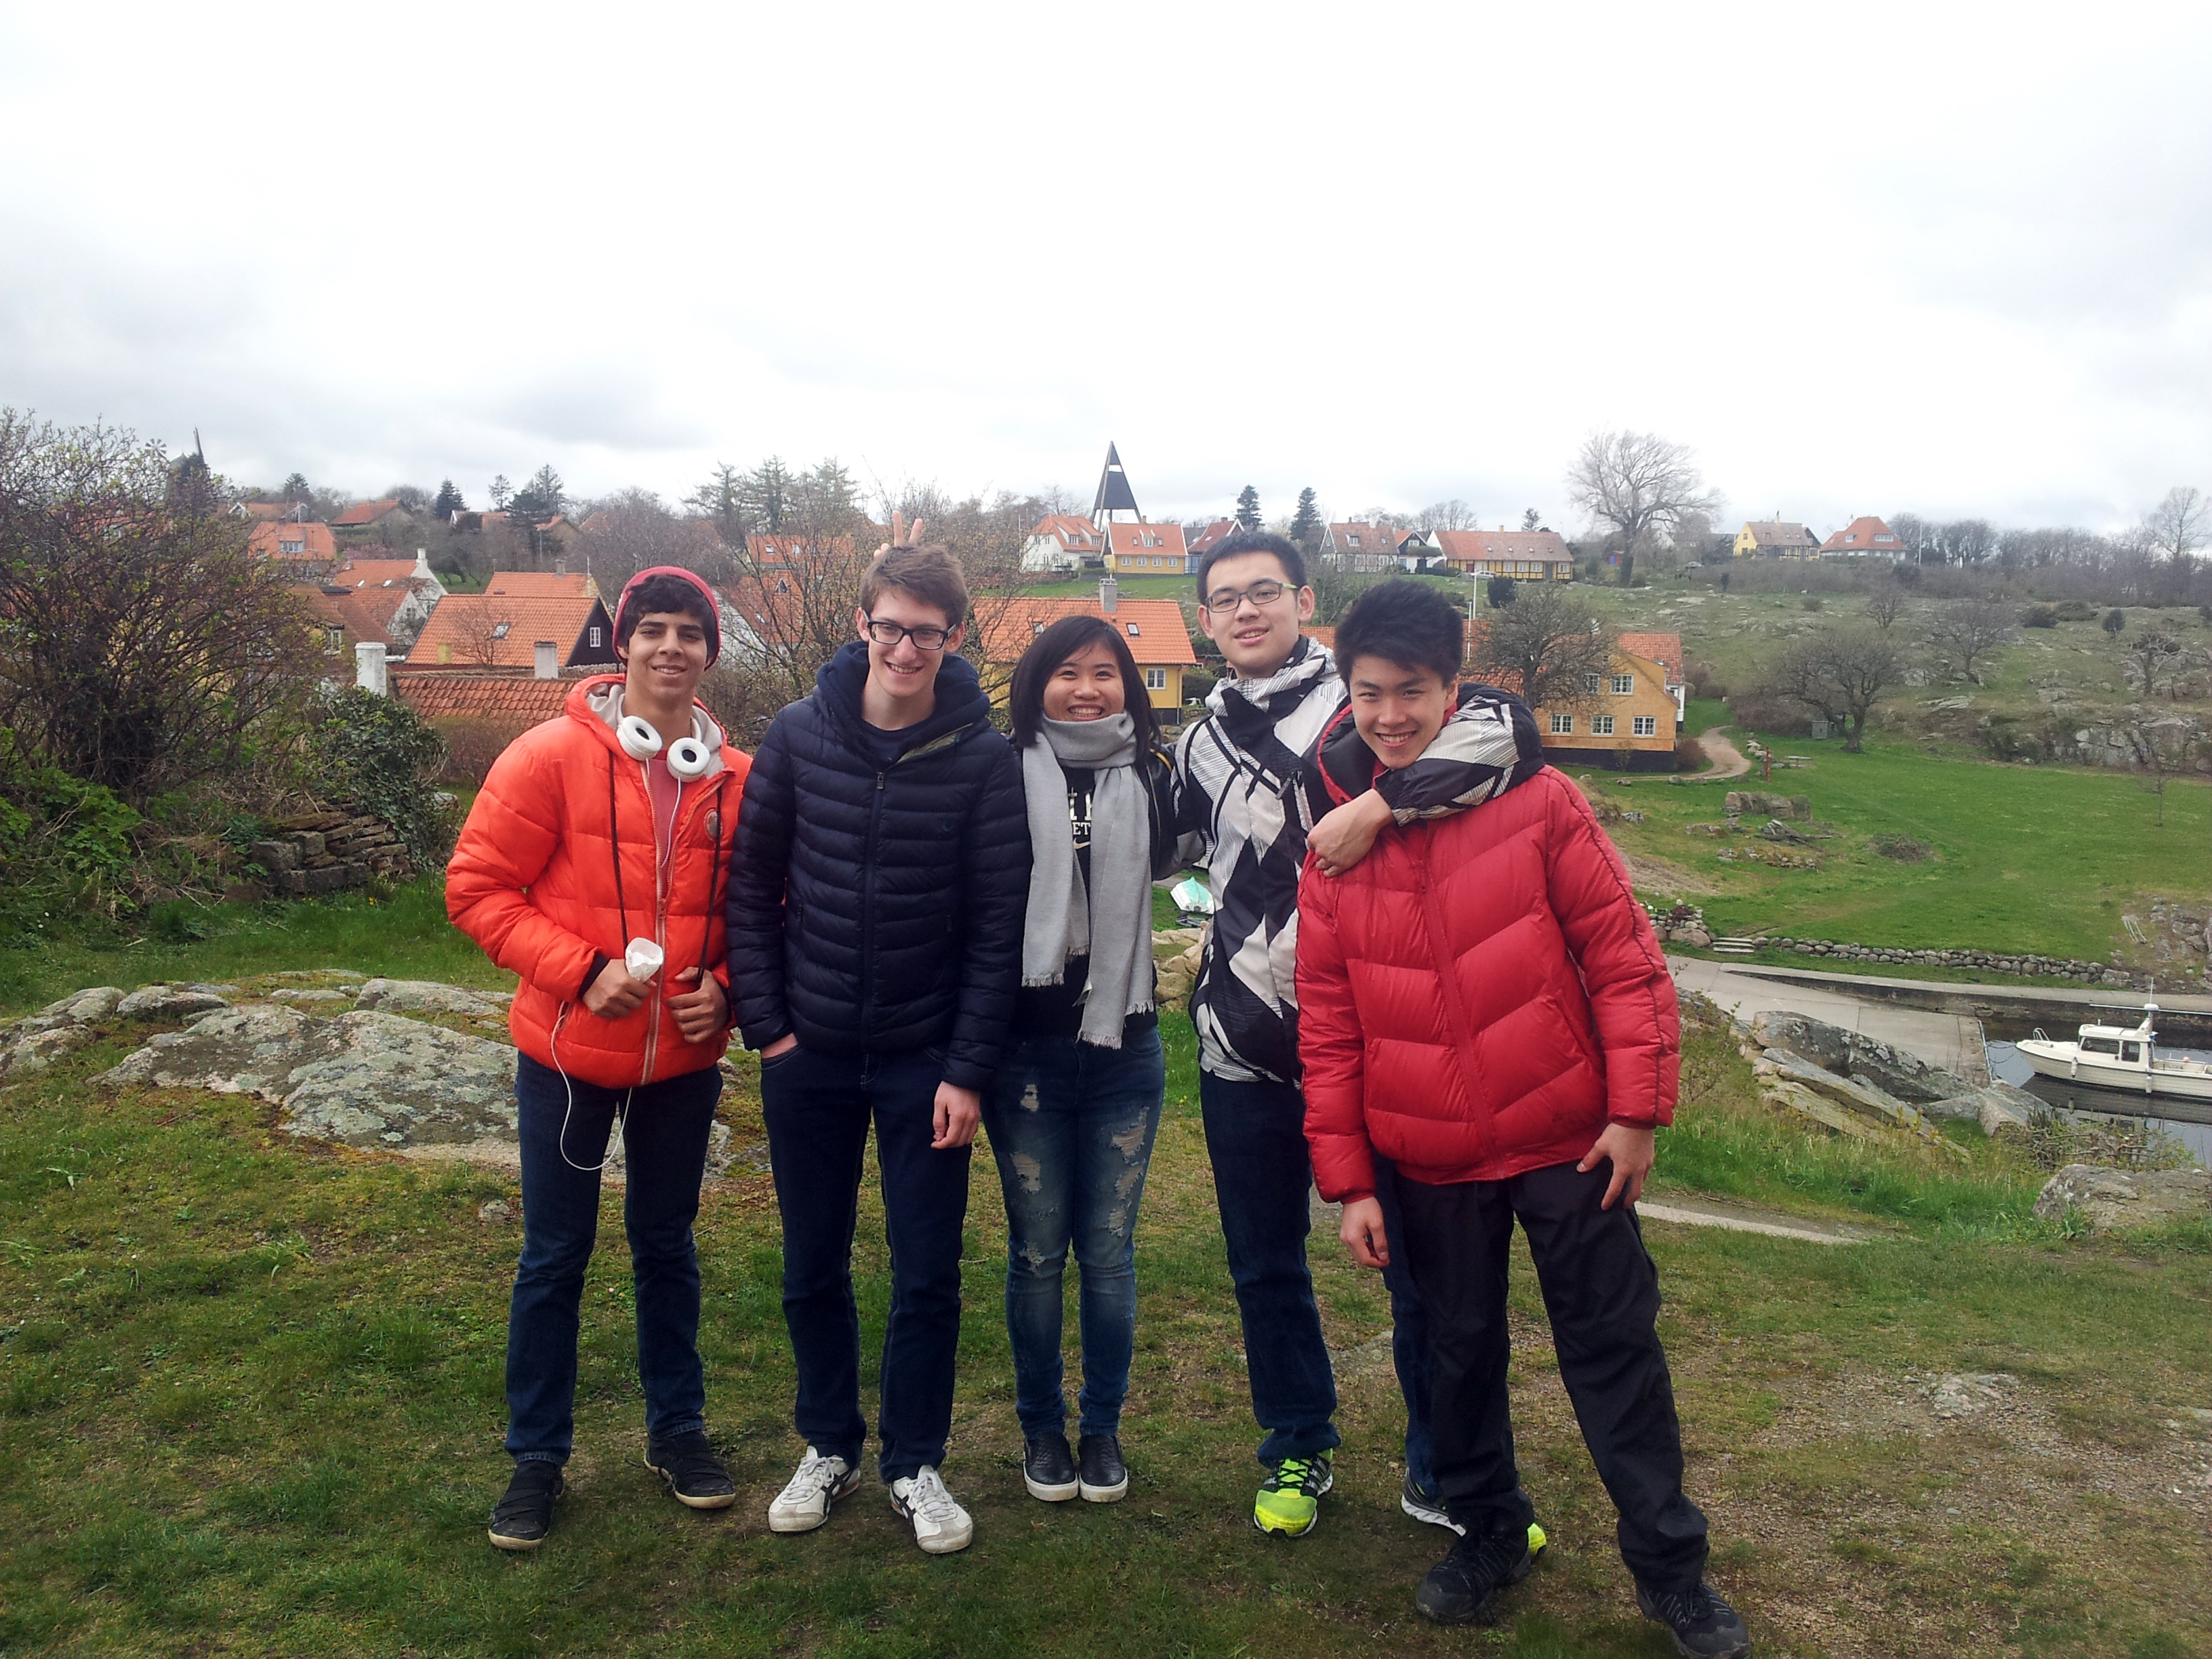 Inbound students on easter break in Denmark